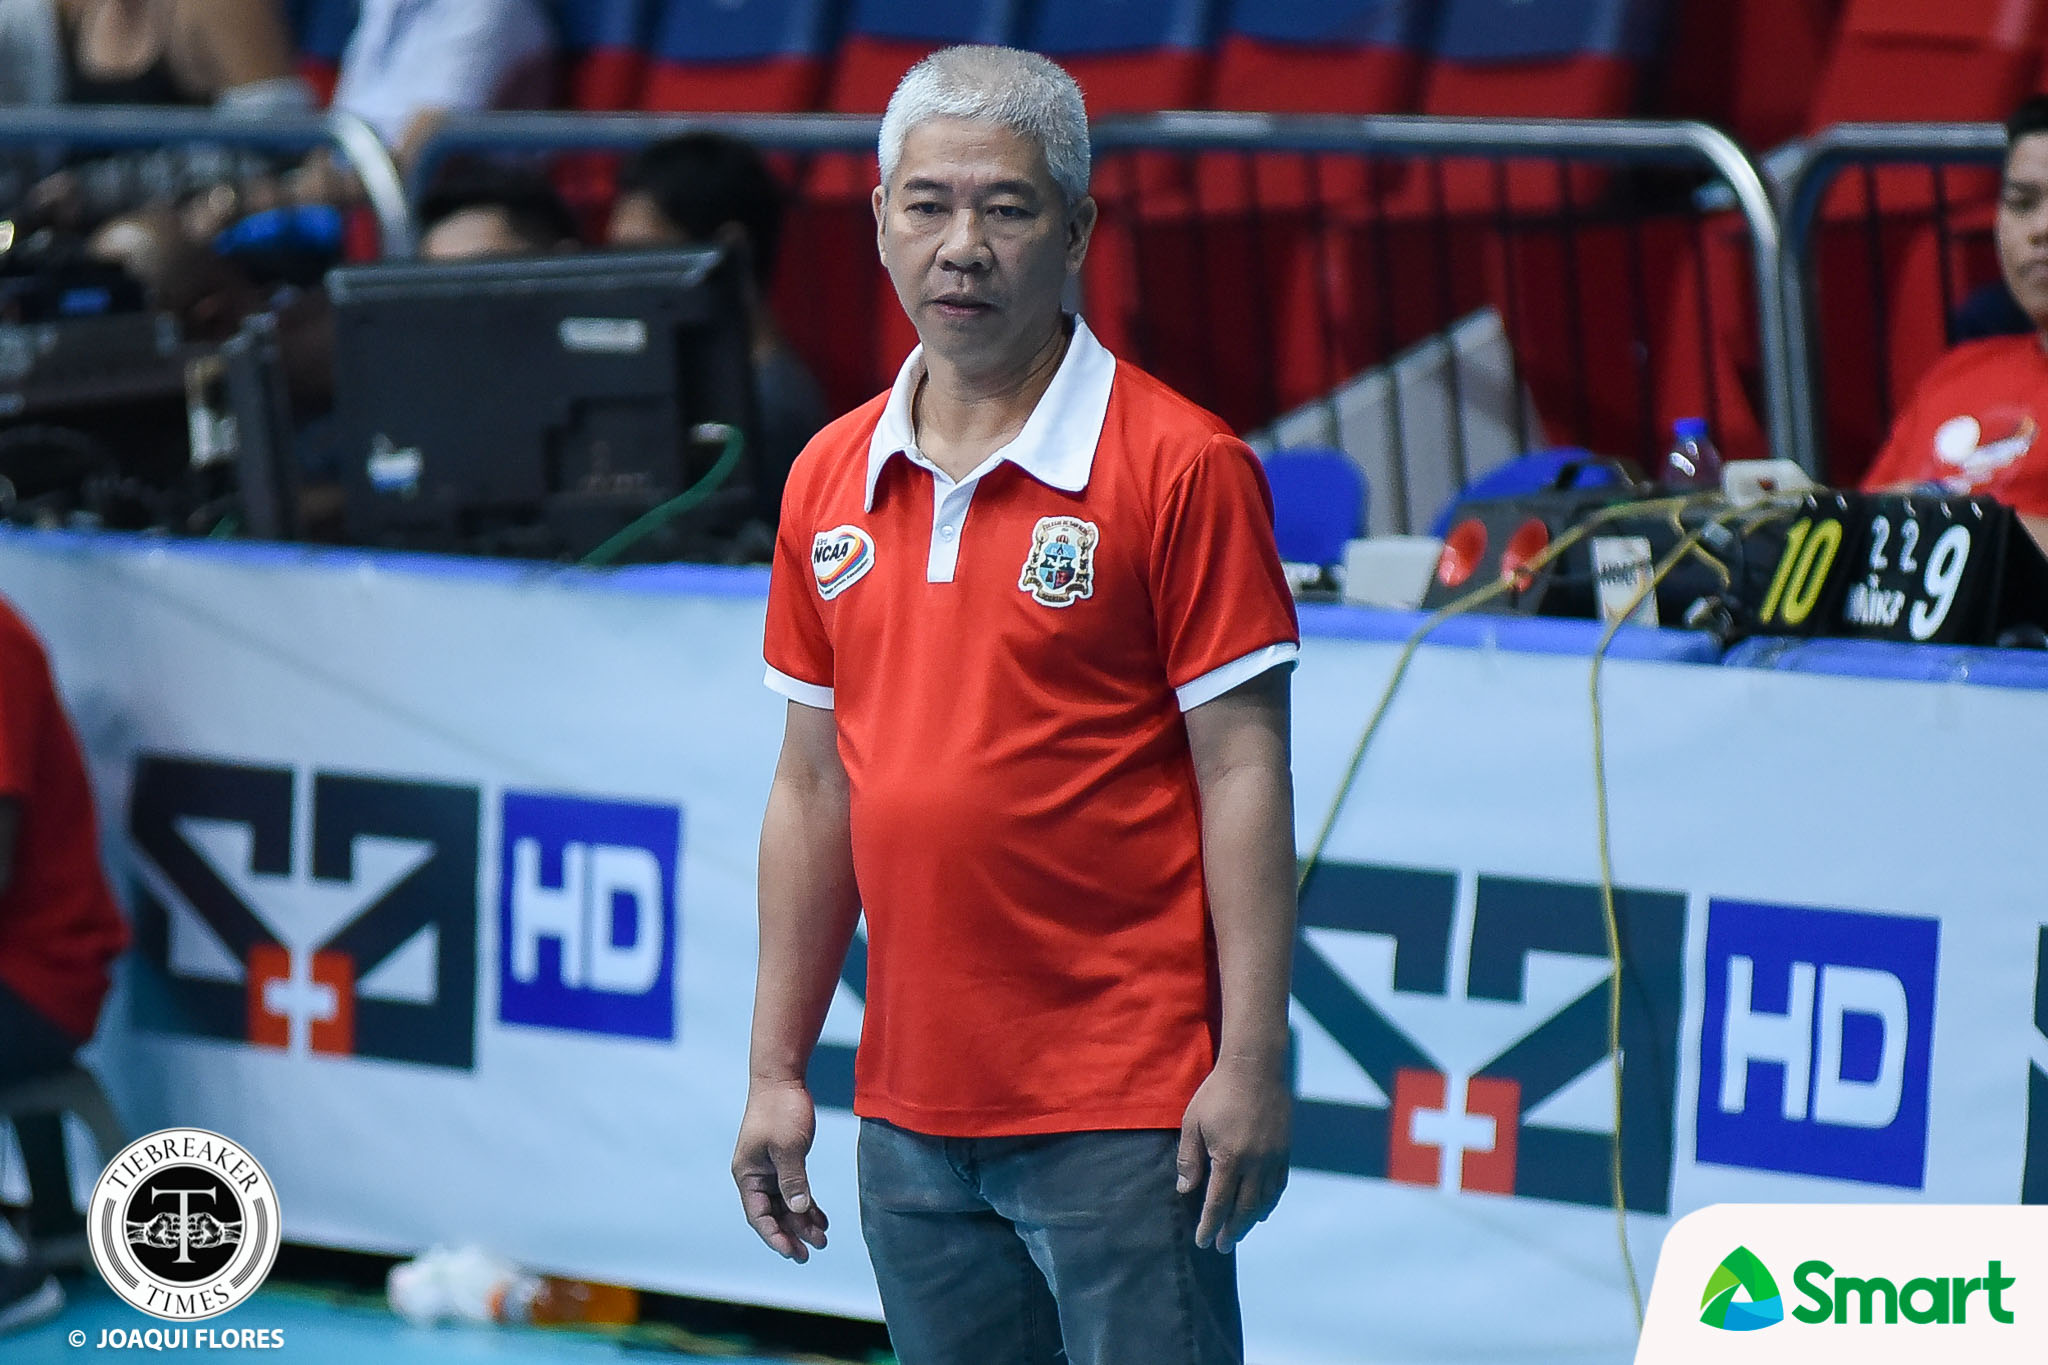 Tiebreaker Times Nes Pamilar, 52, passes away NCAA News PVL SBC Volleyball  Tacloban Fighting Warays San Beda Men's Volleyball Nes Pamilar NCAA Season 94 Men's Volleyball NCAA Season 94